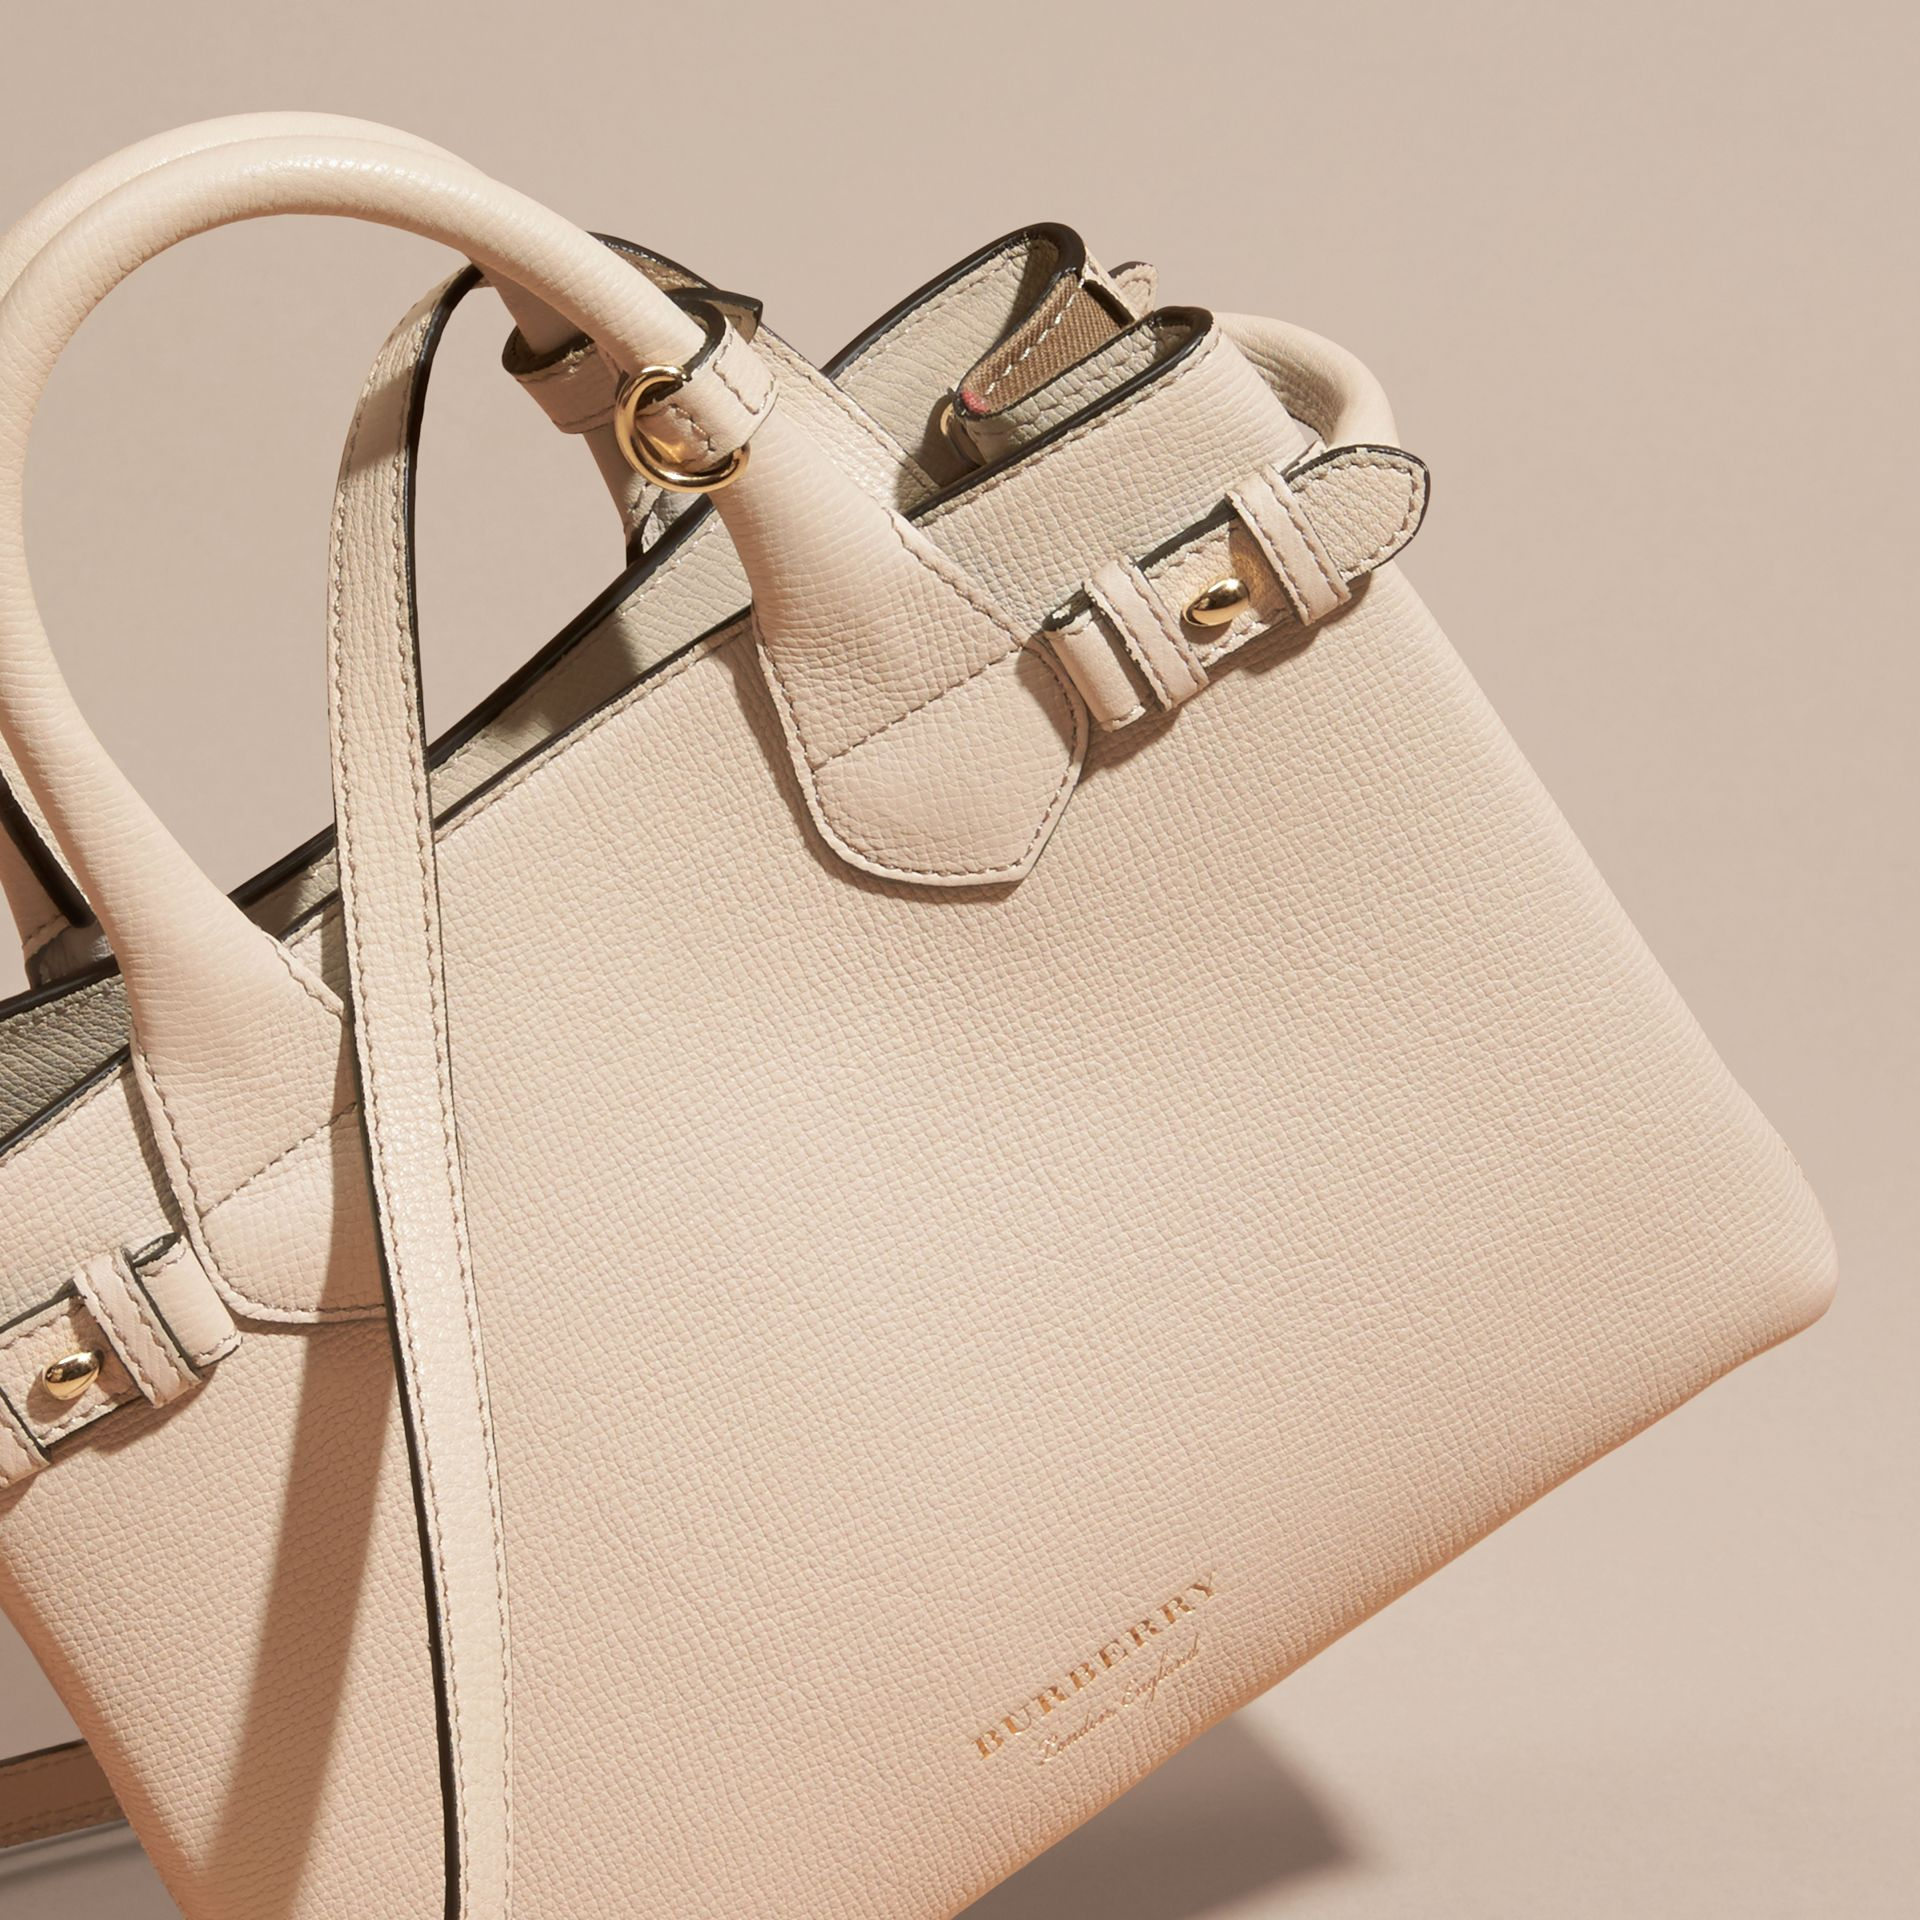 Petit sac The Banner en cuir et coton House check (Calcaire) - Femme | Burberry - photo de la galerie 6